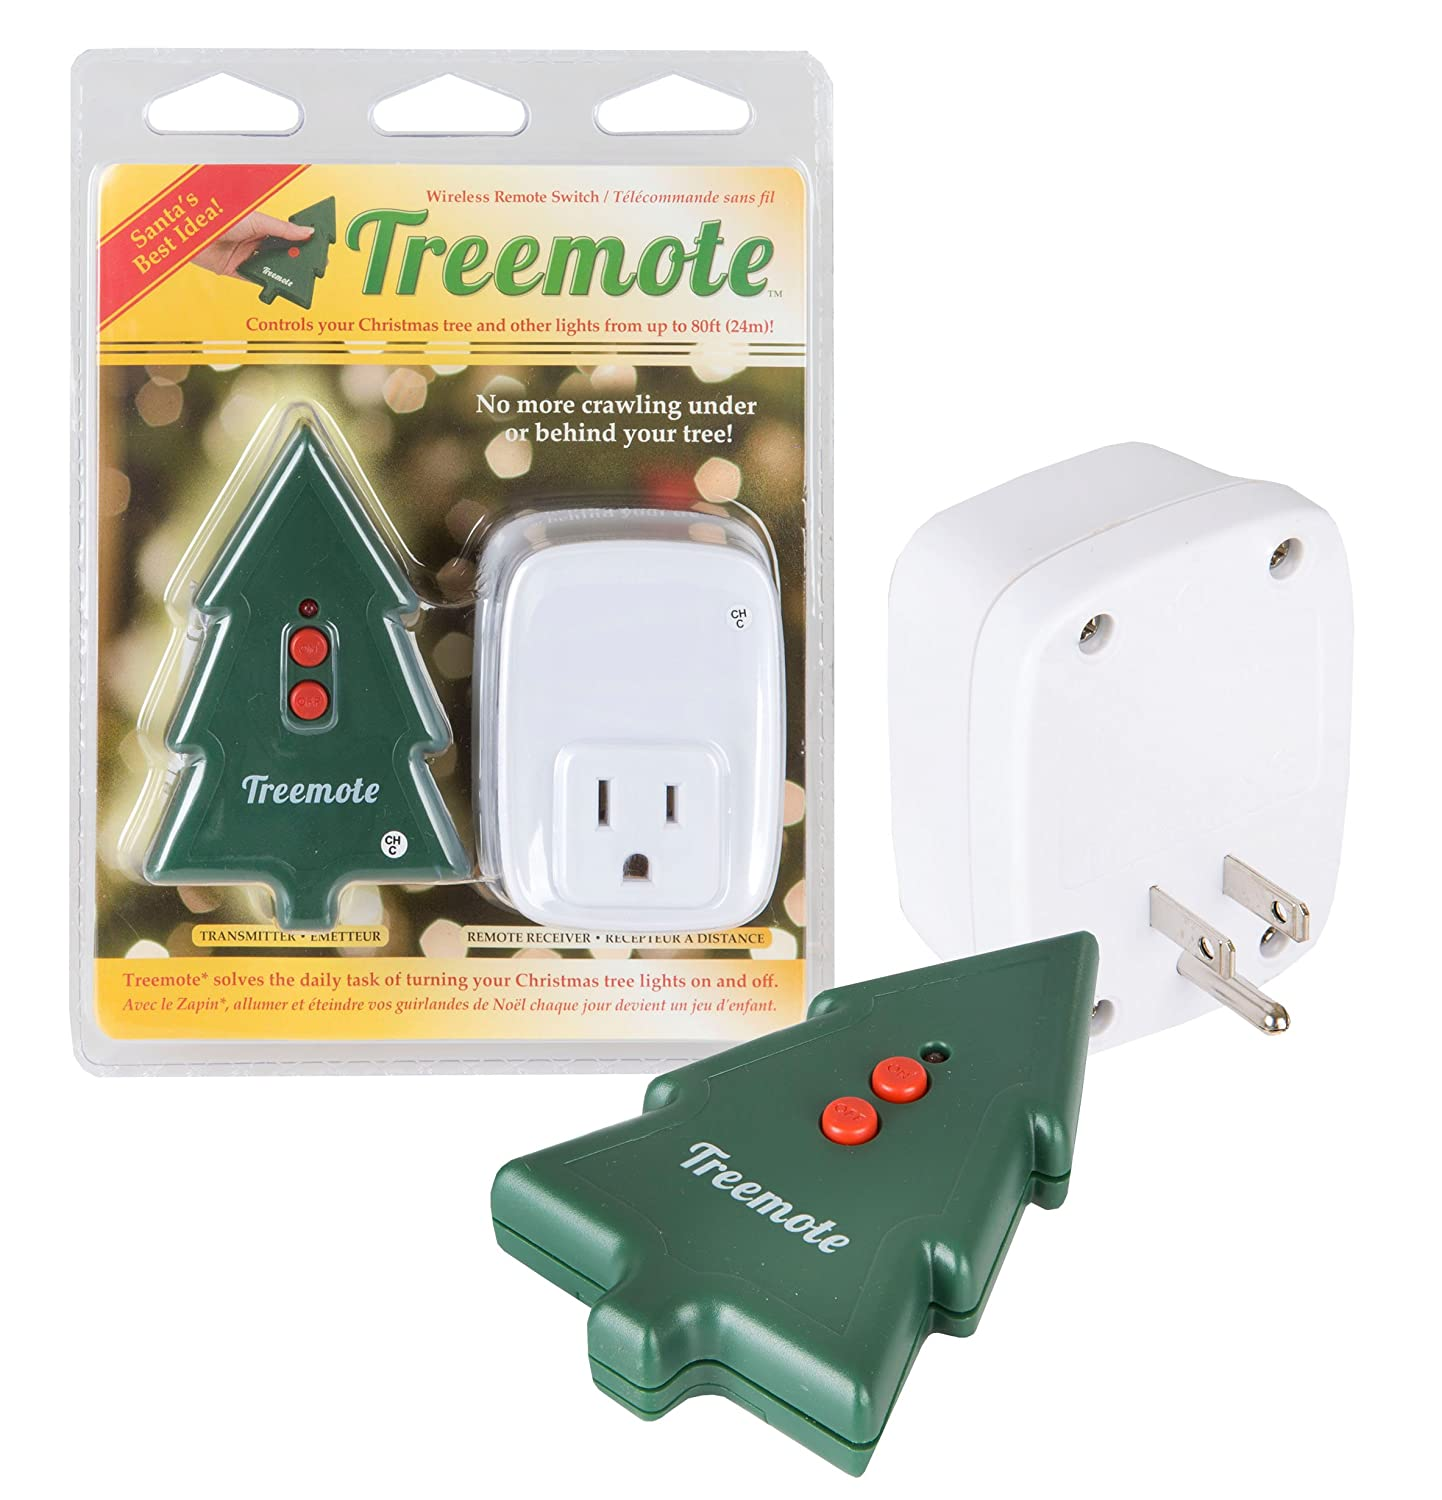 amazoncom treemote wireless remote switch for christmas tree and other lights home kitchen